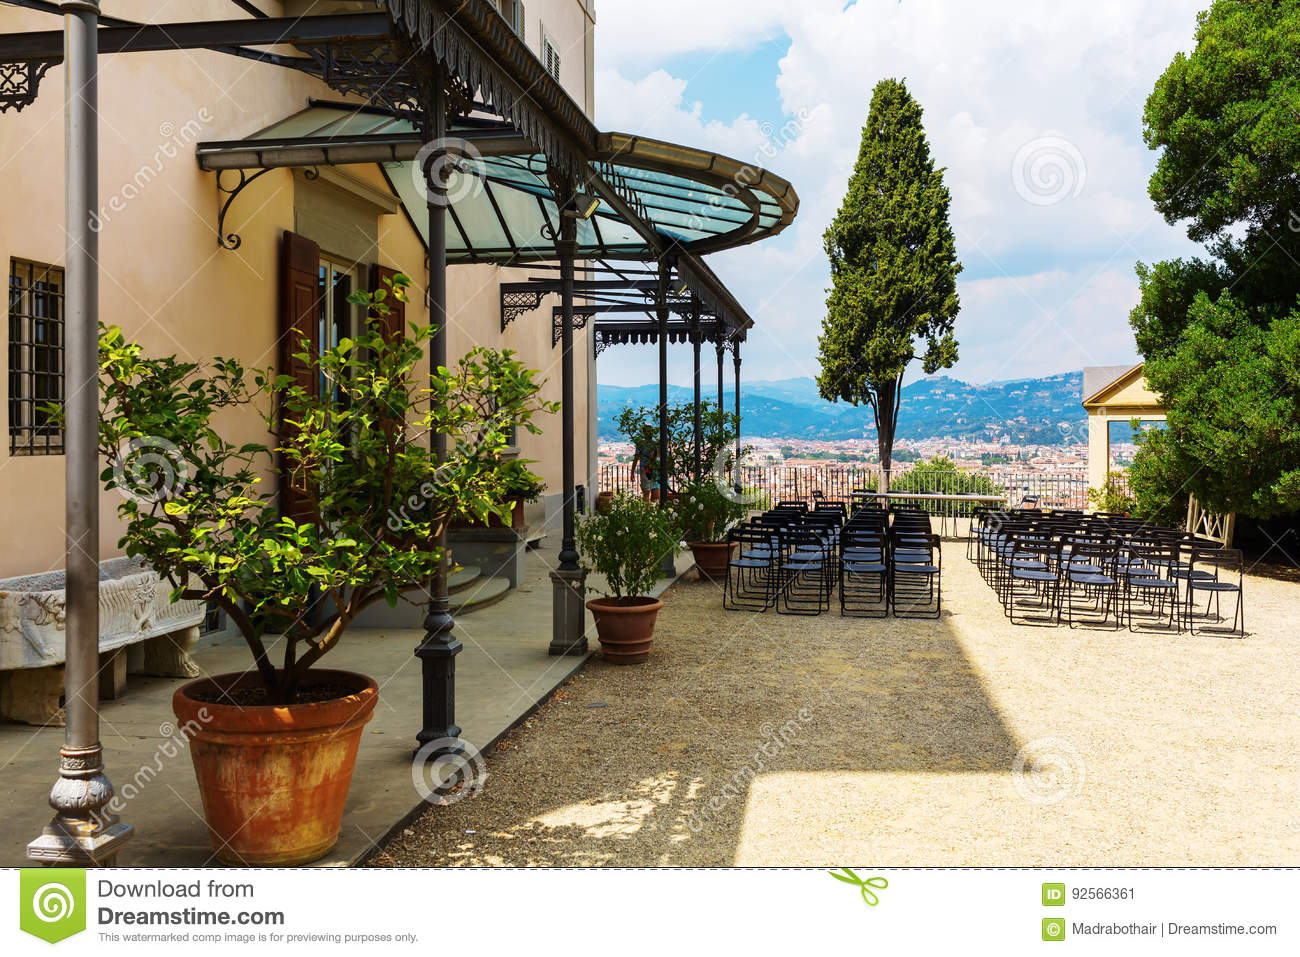 Giardino Bardini In Florence Italy Editorial Photo Image Of Garden Tree 92566361